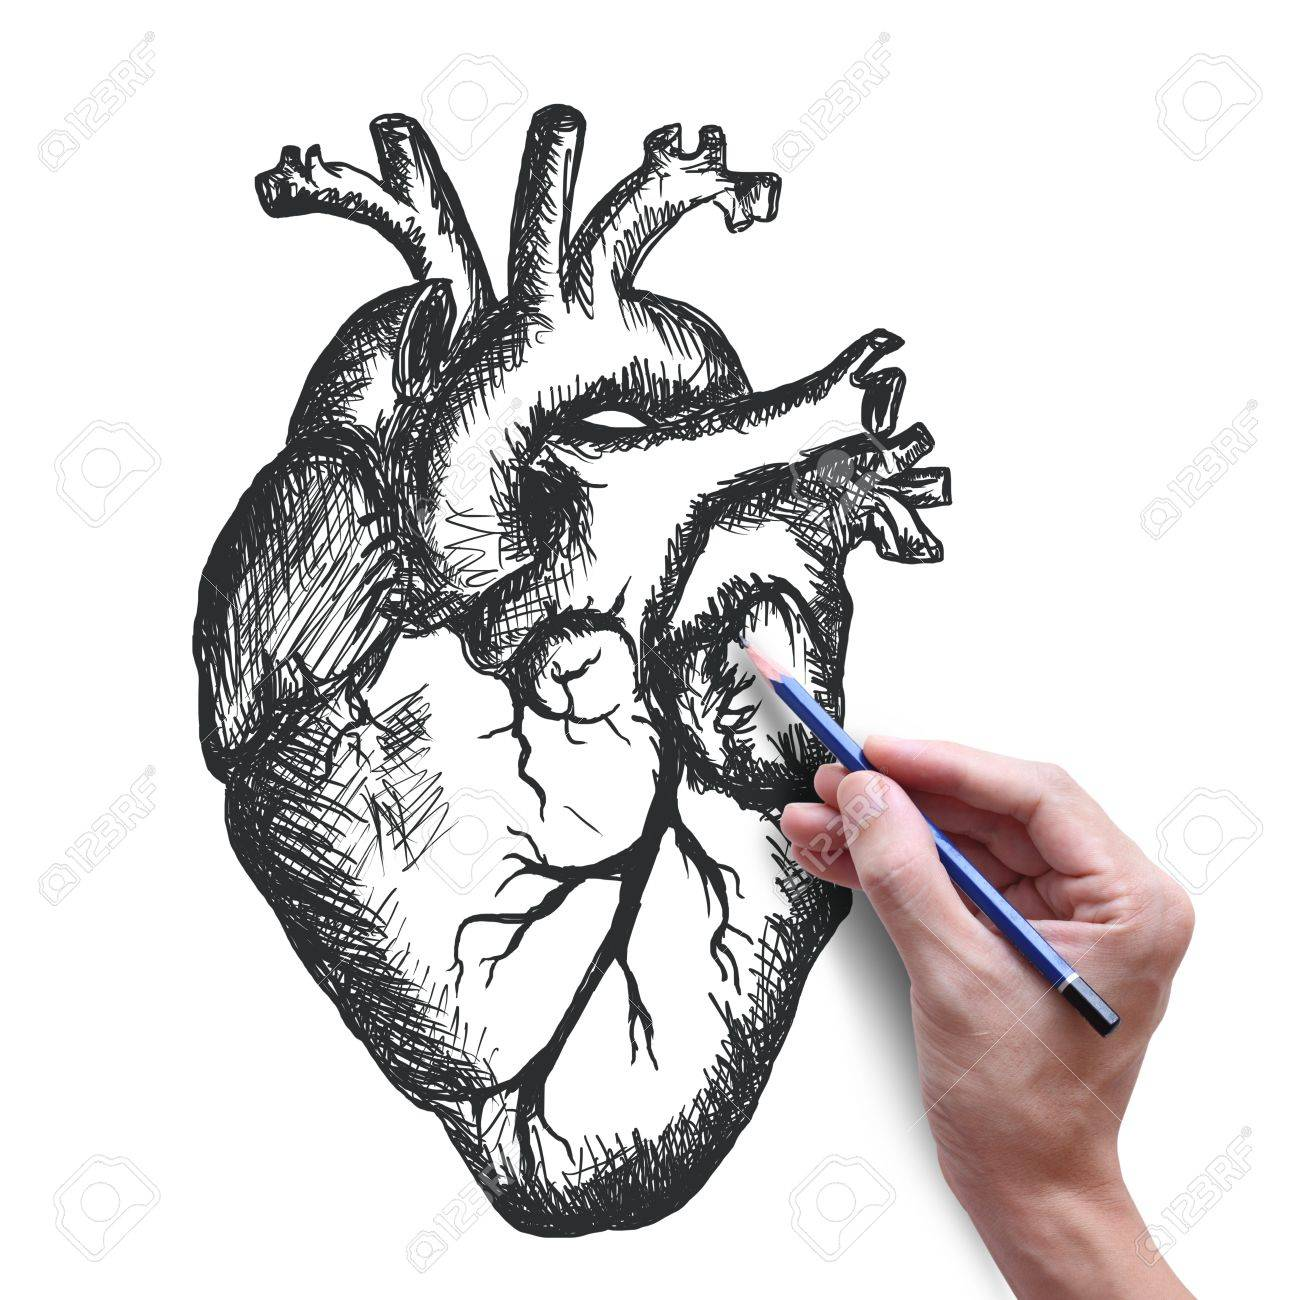 1300x1300 Heart Drawing On White Background Stock Photo, Picture And Royalty